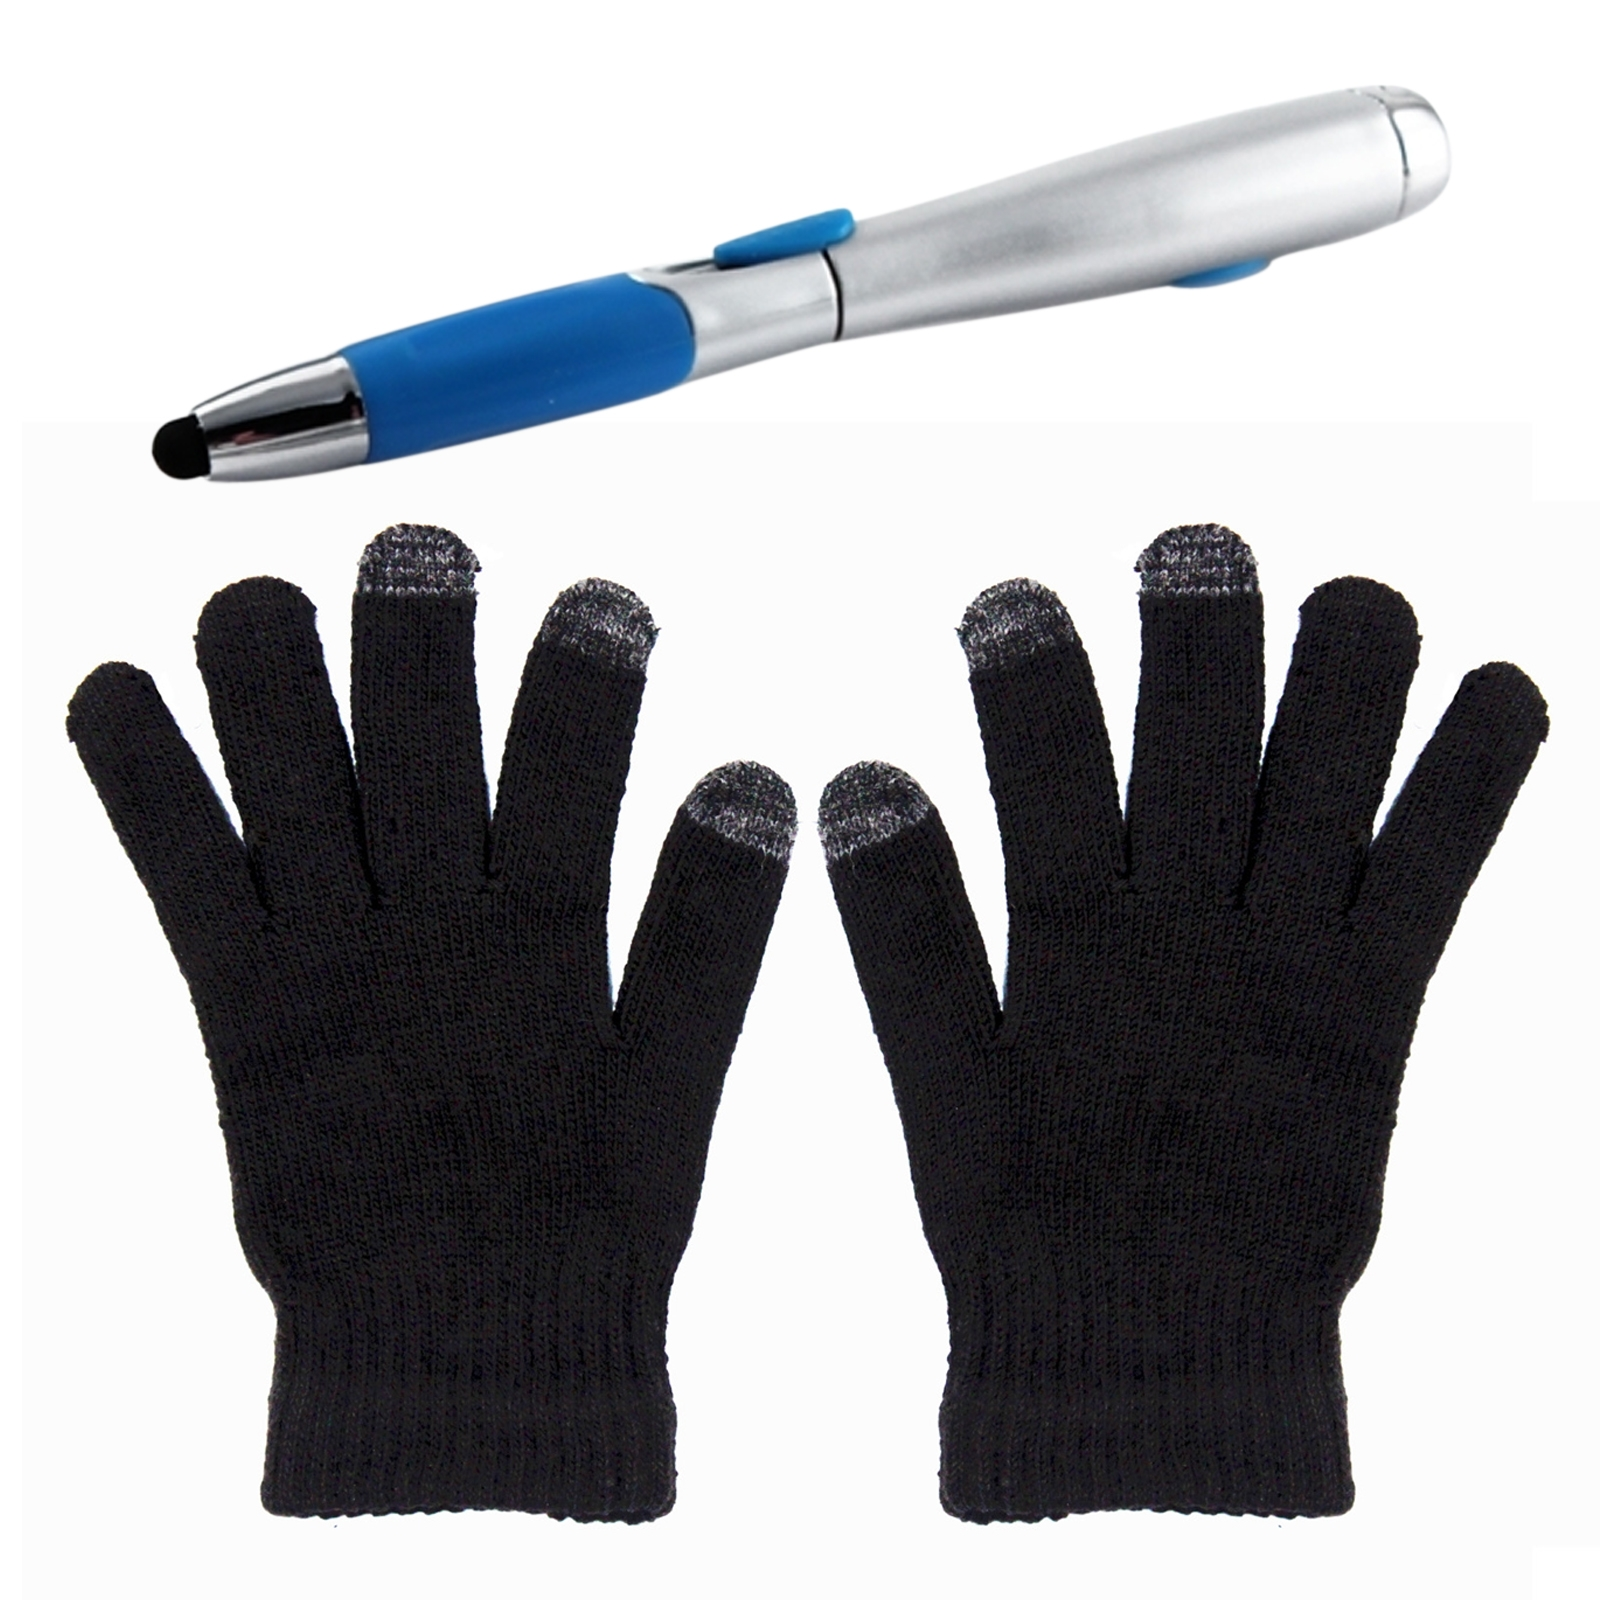 Multipurpose LED Stylus Pen and Smart Phone Touchscreen Gloves Holiday Bundle for Cold Winter Weather and Indoor Activities